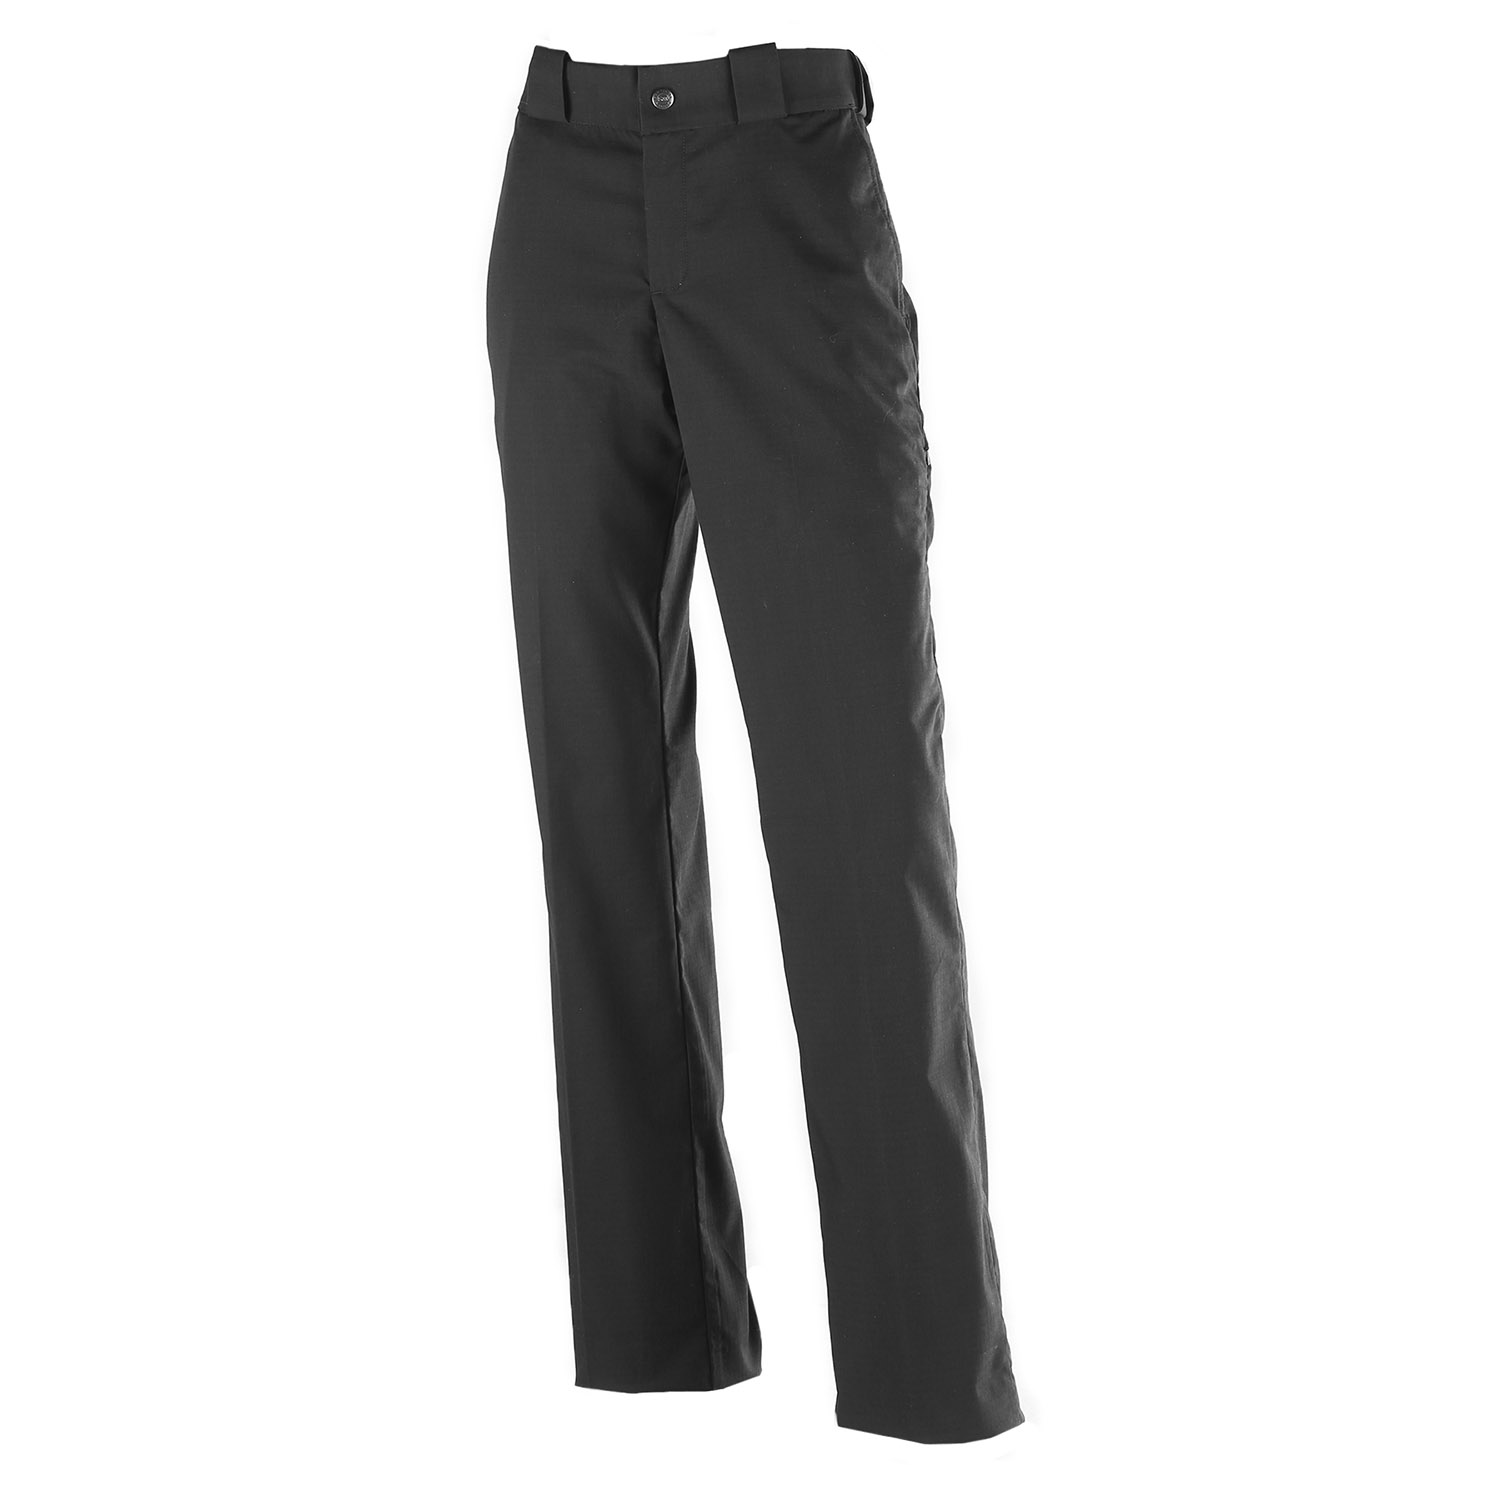 5.11 Tactical Women's Class A Stryke PDU Pants